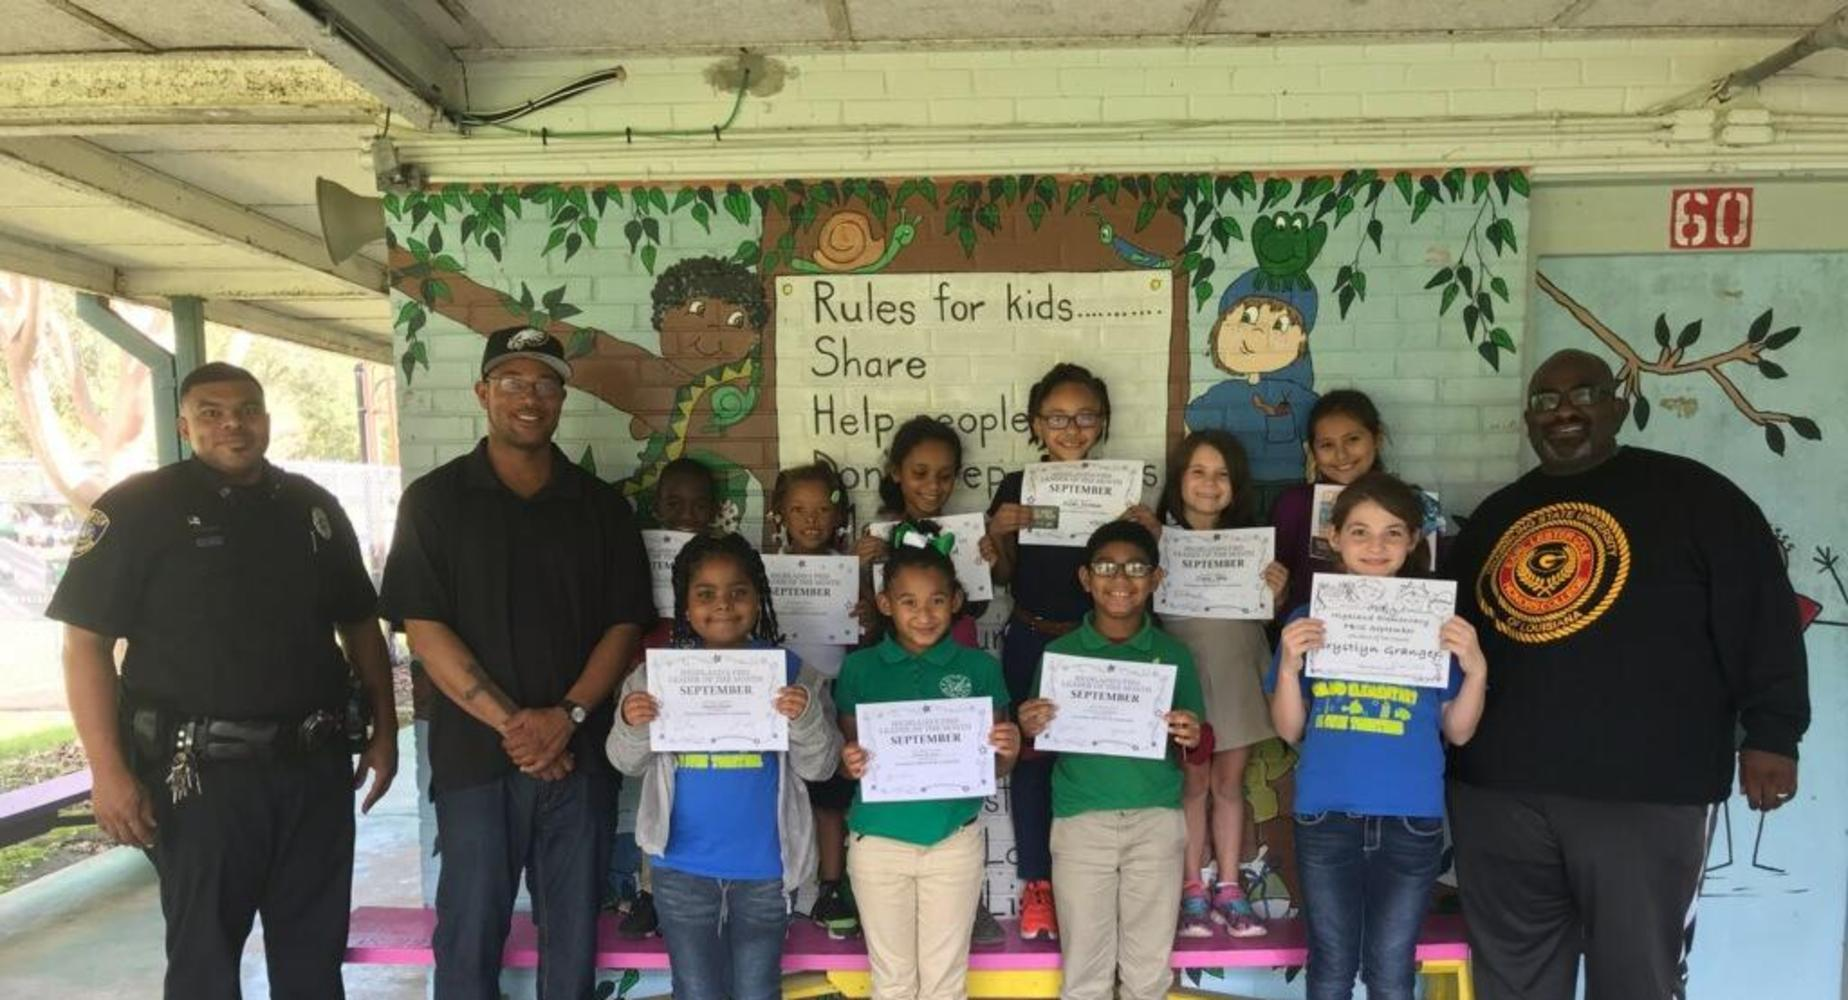 September Students of the Month with Dads & Kids